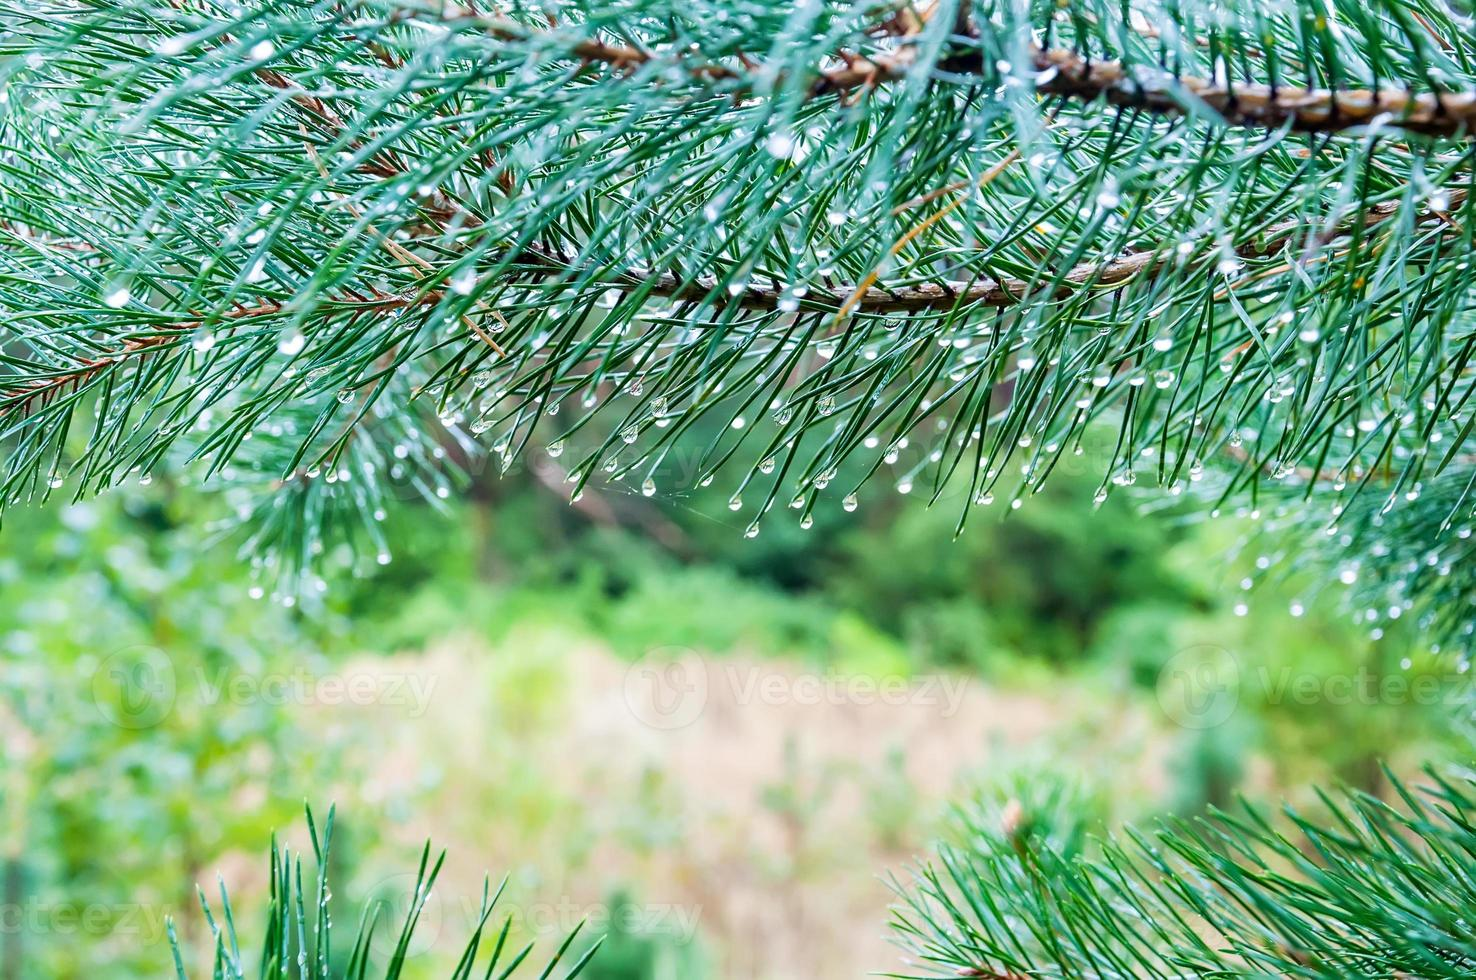 Water drops on pine needles photo